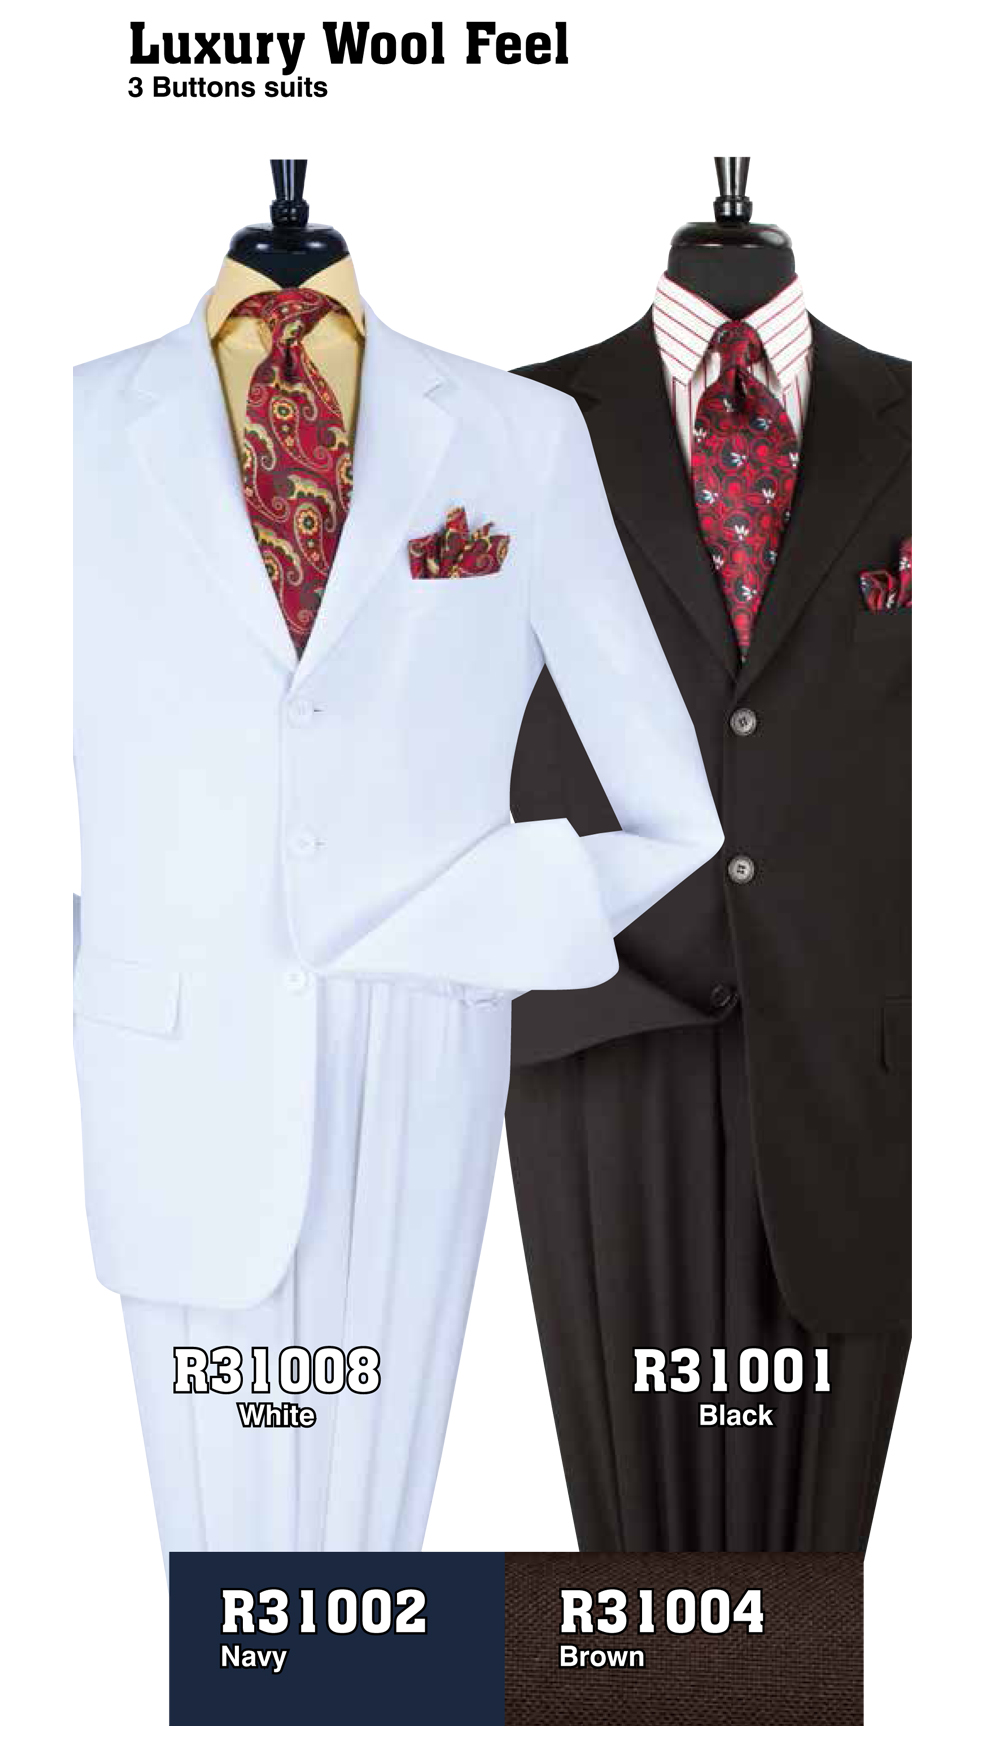 High Fashion Men Suits R31008